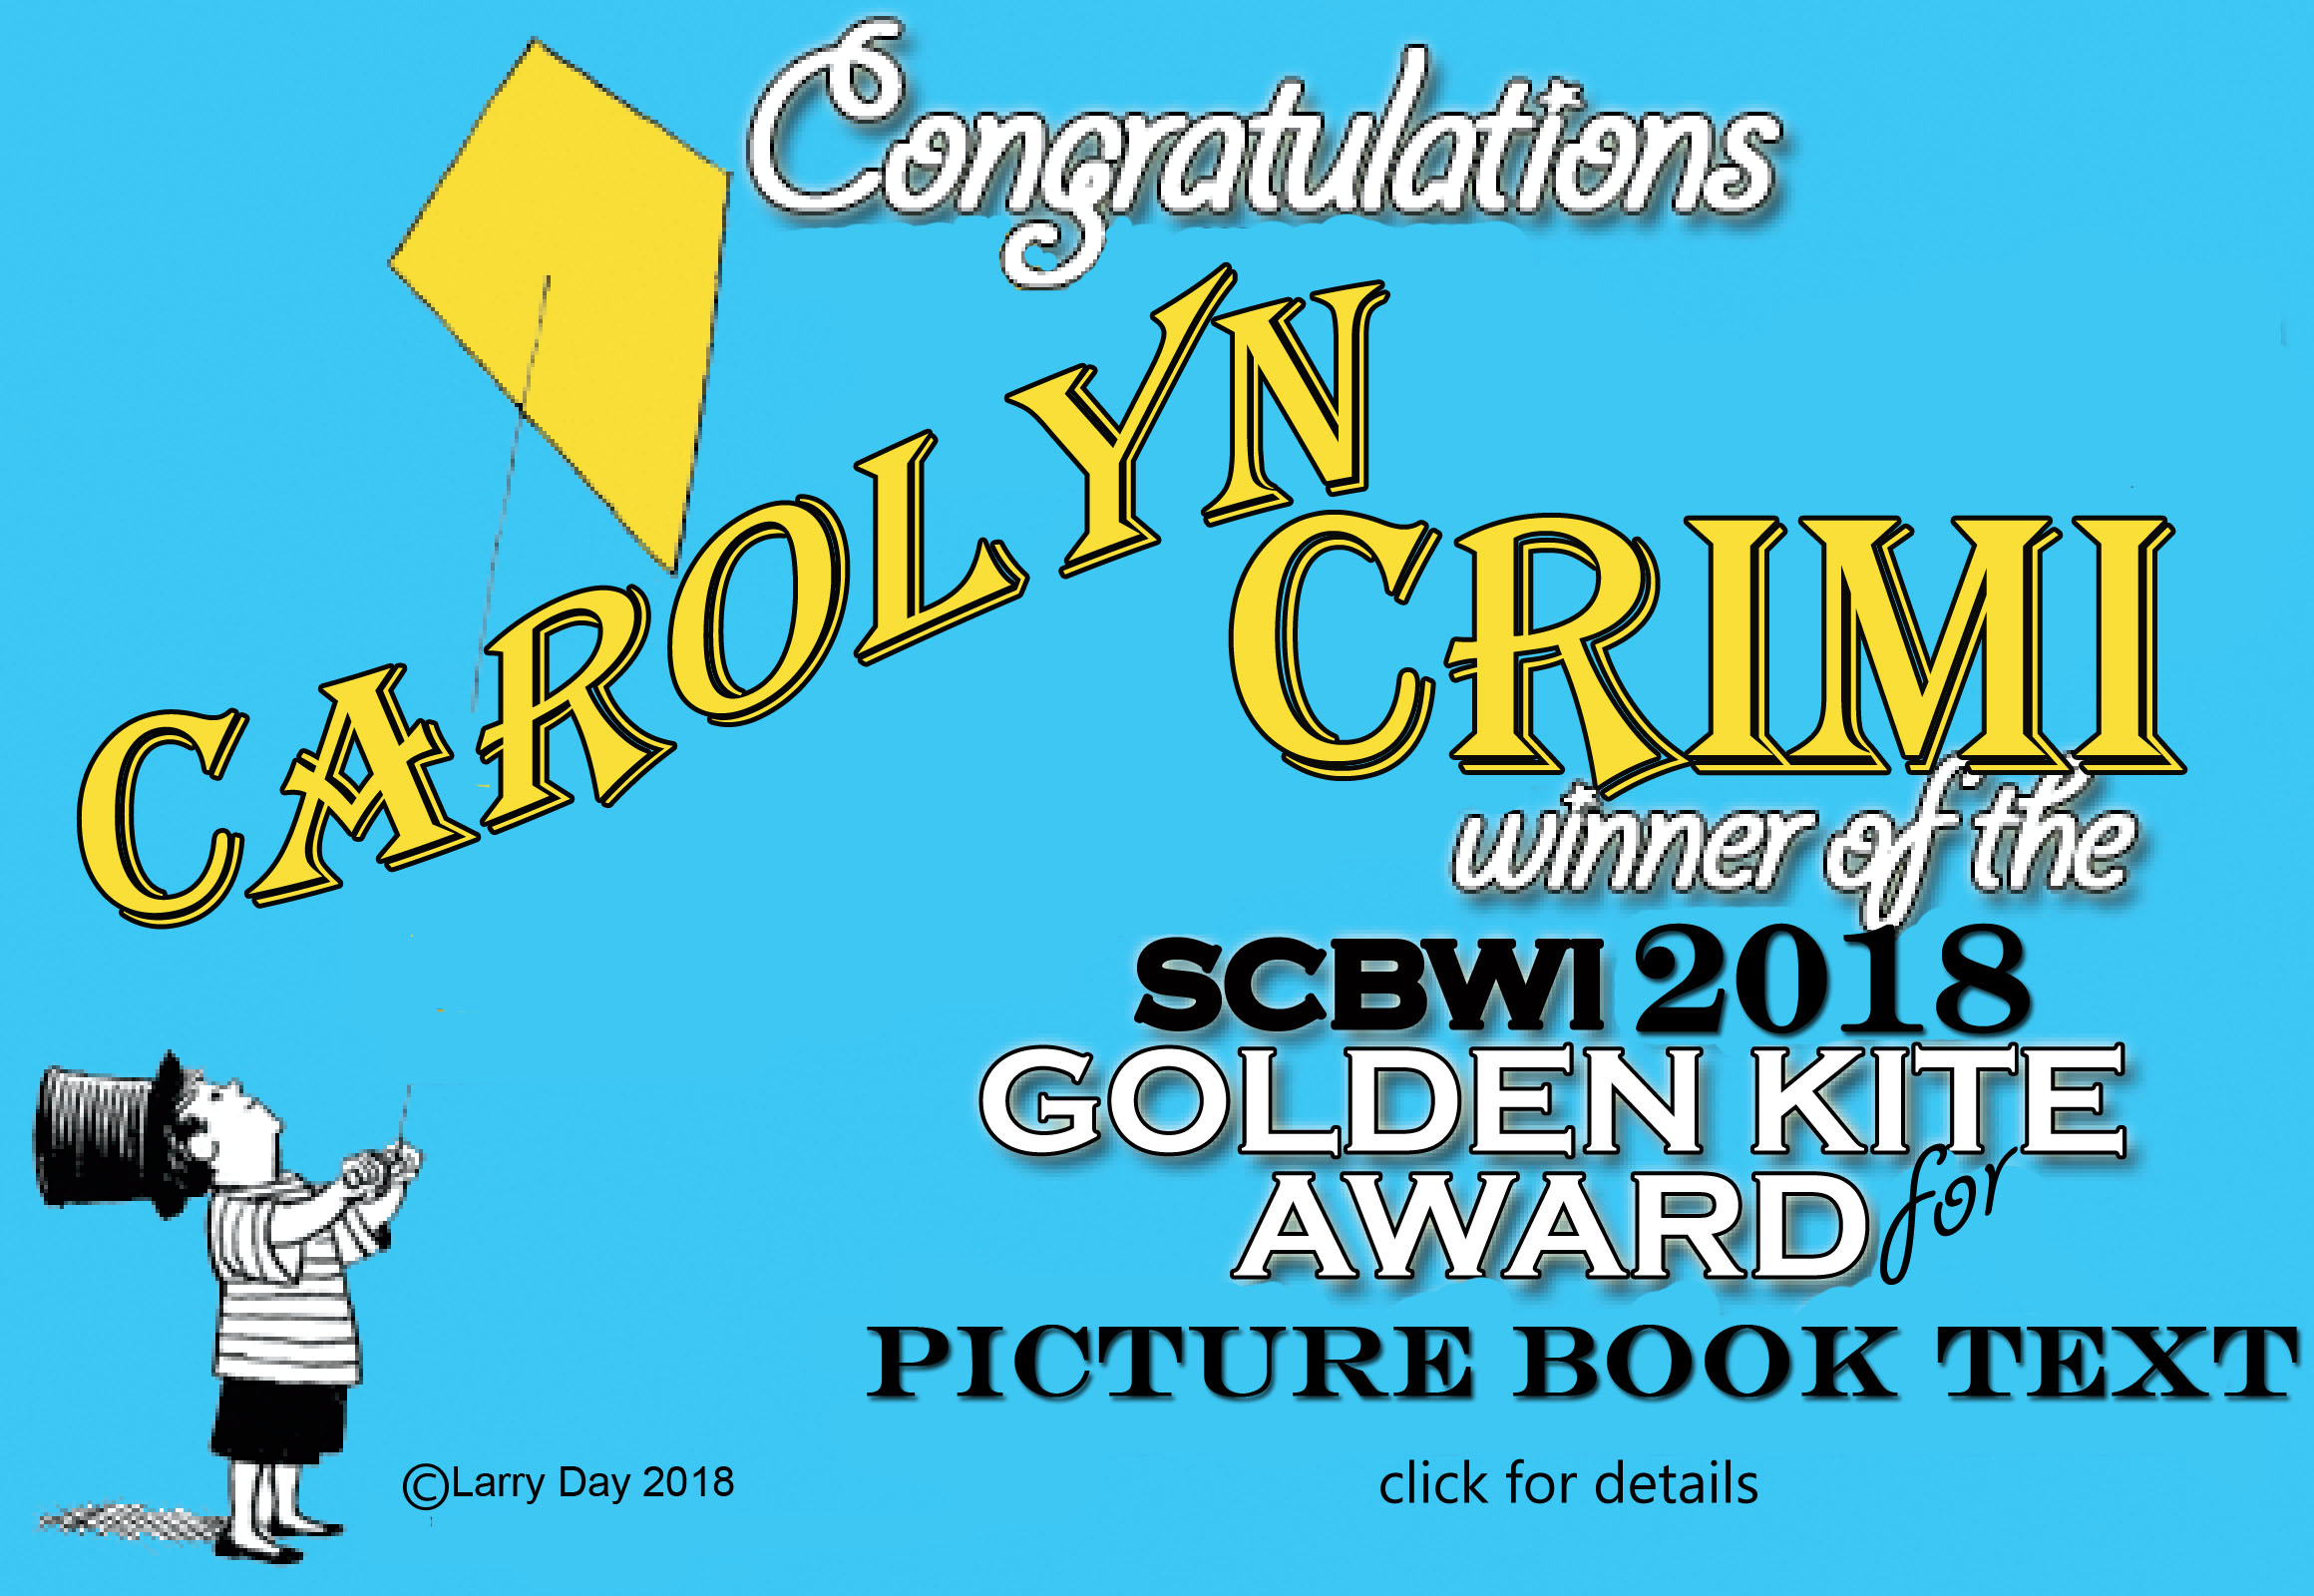 Congratulations Carolyn Crimi, 2018 winner of the SCBWI Golden Kite Award for Picture Book Text https://www.scbwi.org/scbwi-announces-2018-golden-kite-winners/